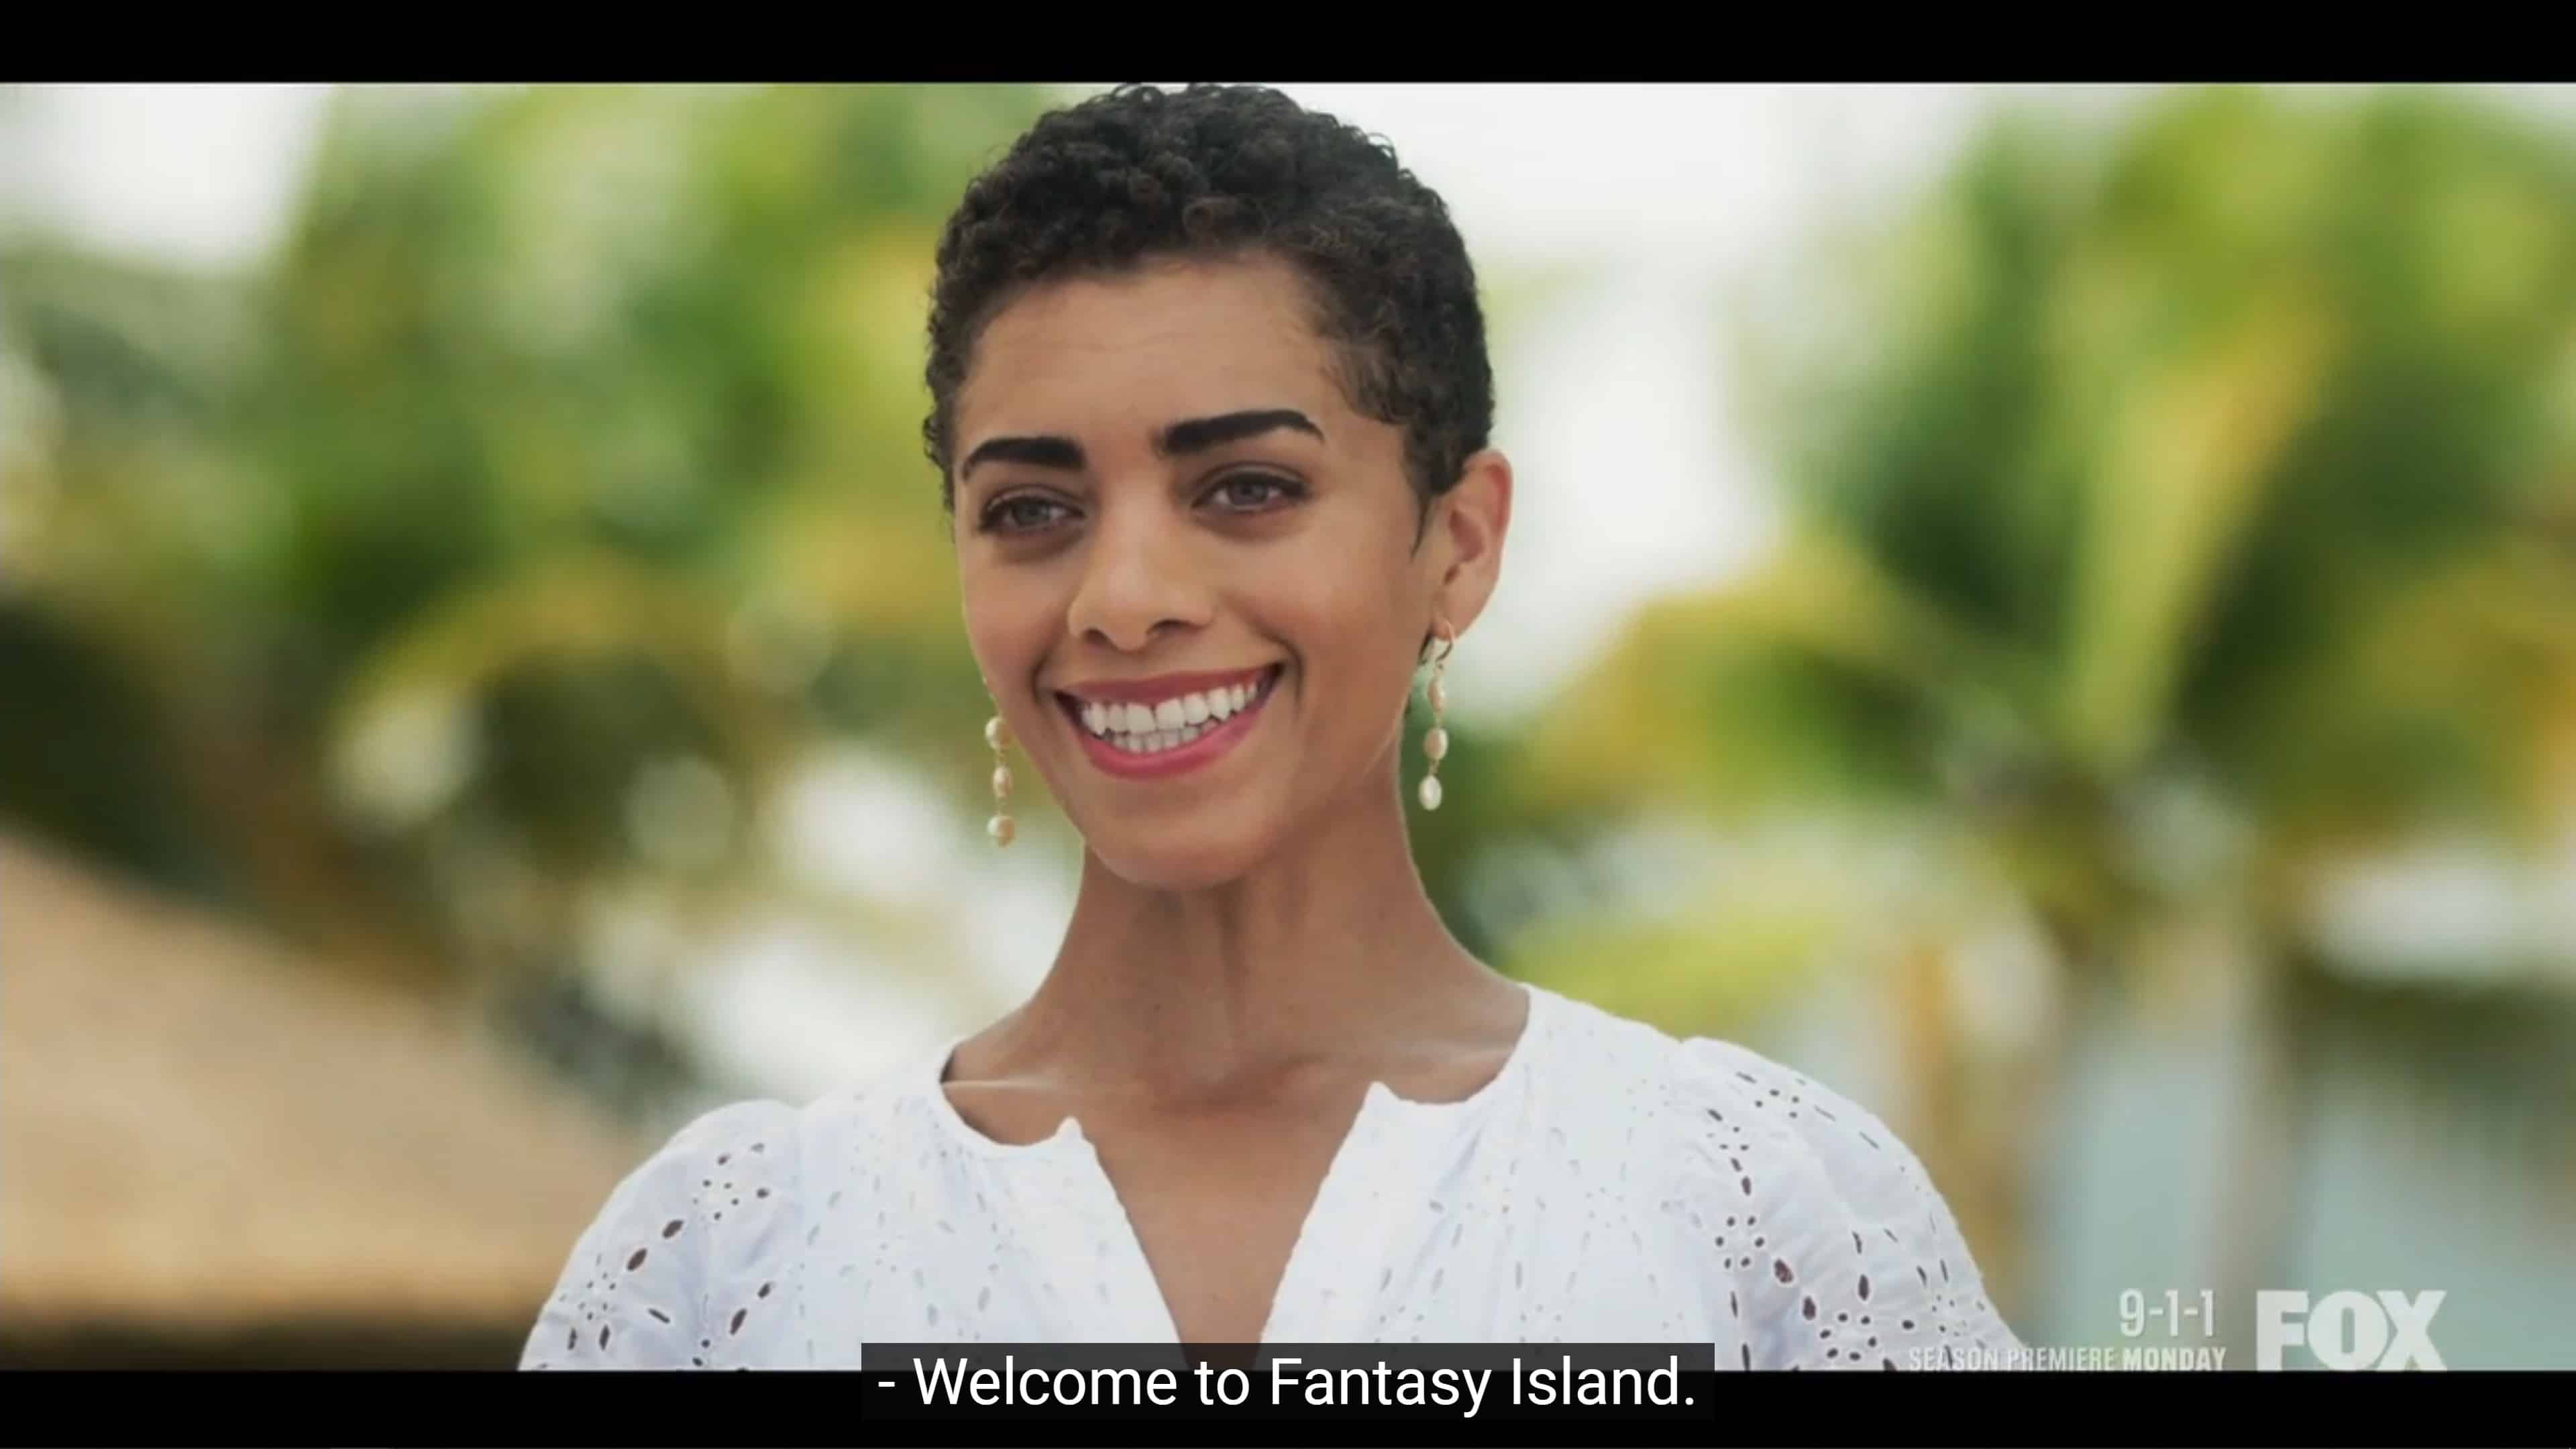 Ruby welcoming Isabel to Fantasy Island